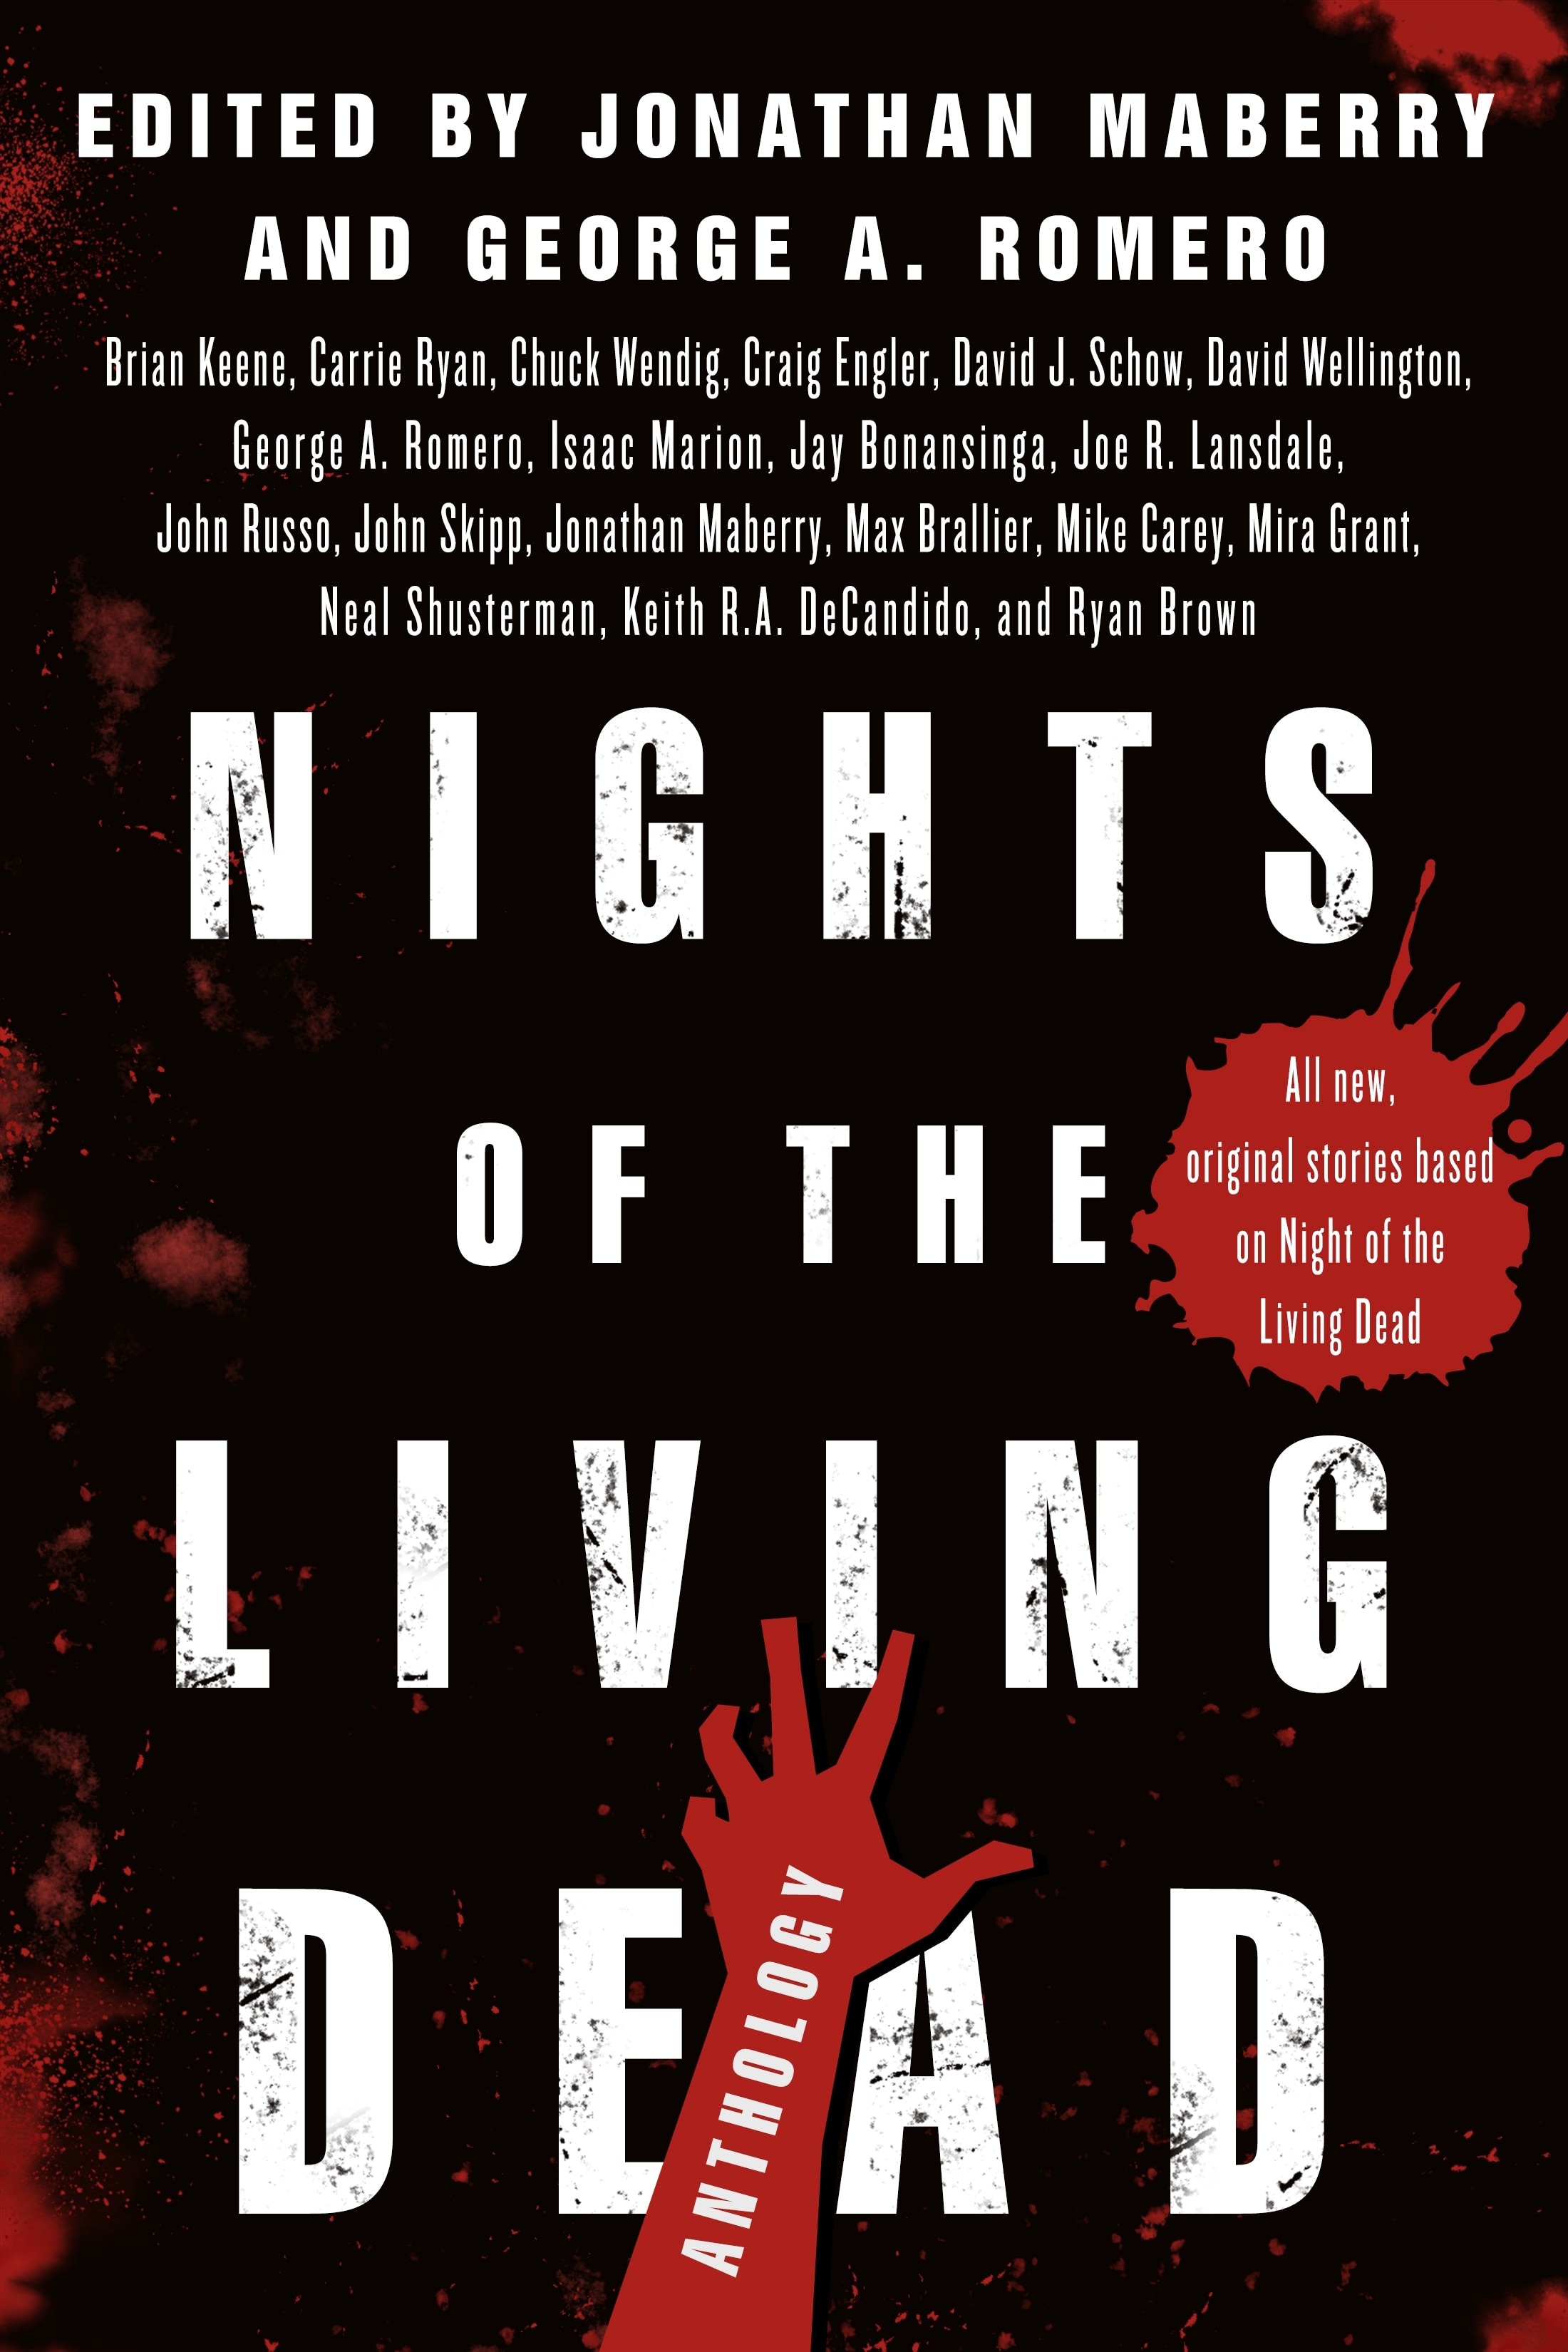 nightsofthelivingdeadcover - Exclusive: Read an Excerpt of Joe Lansdale's Story From the Upcoming Nights of the Living Dead Anthology